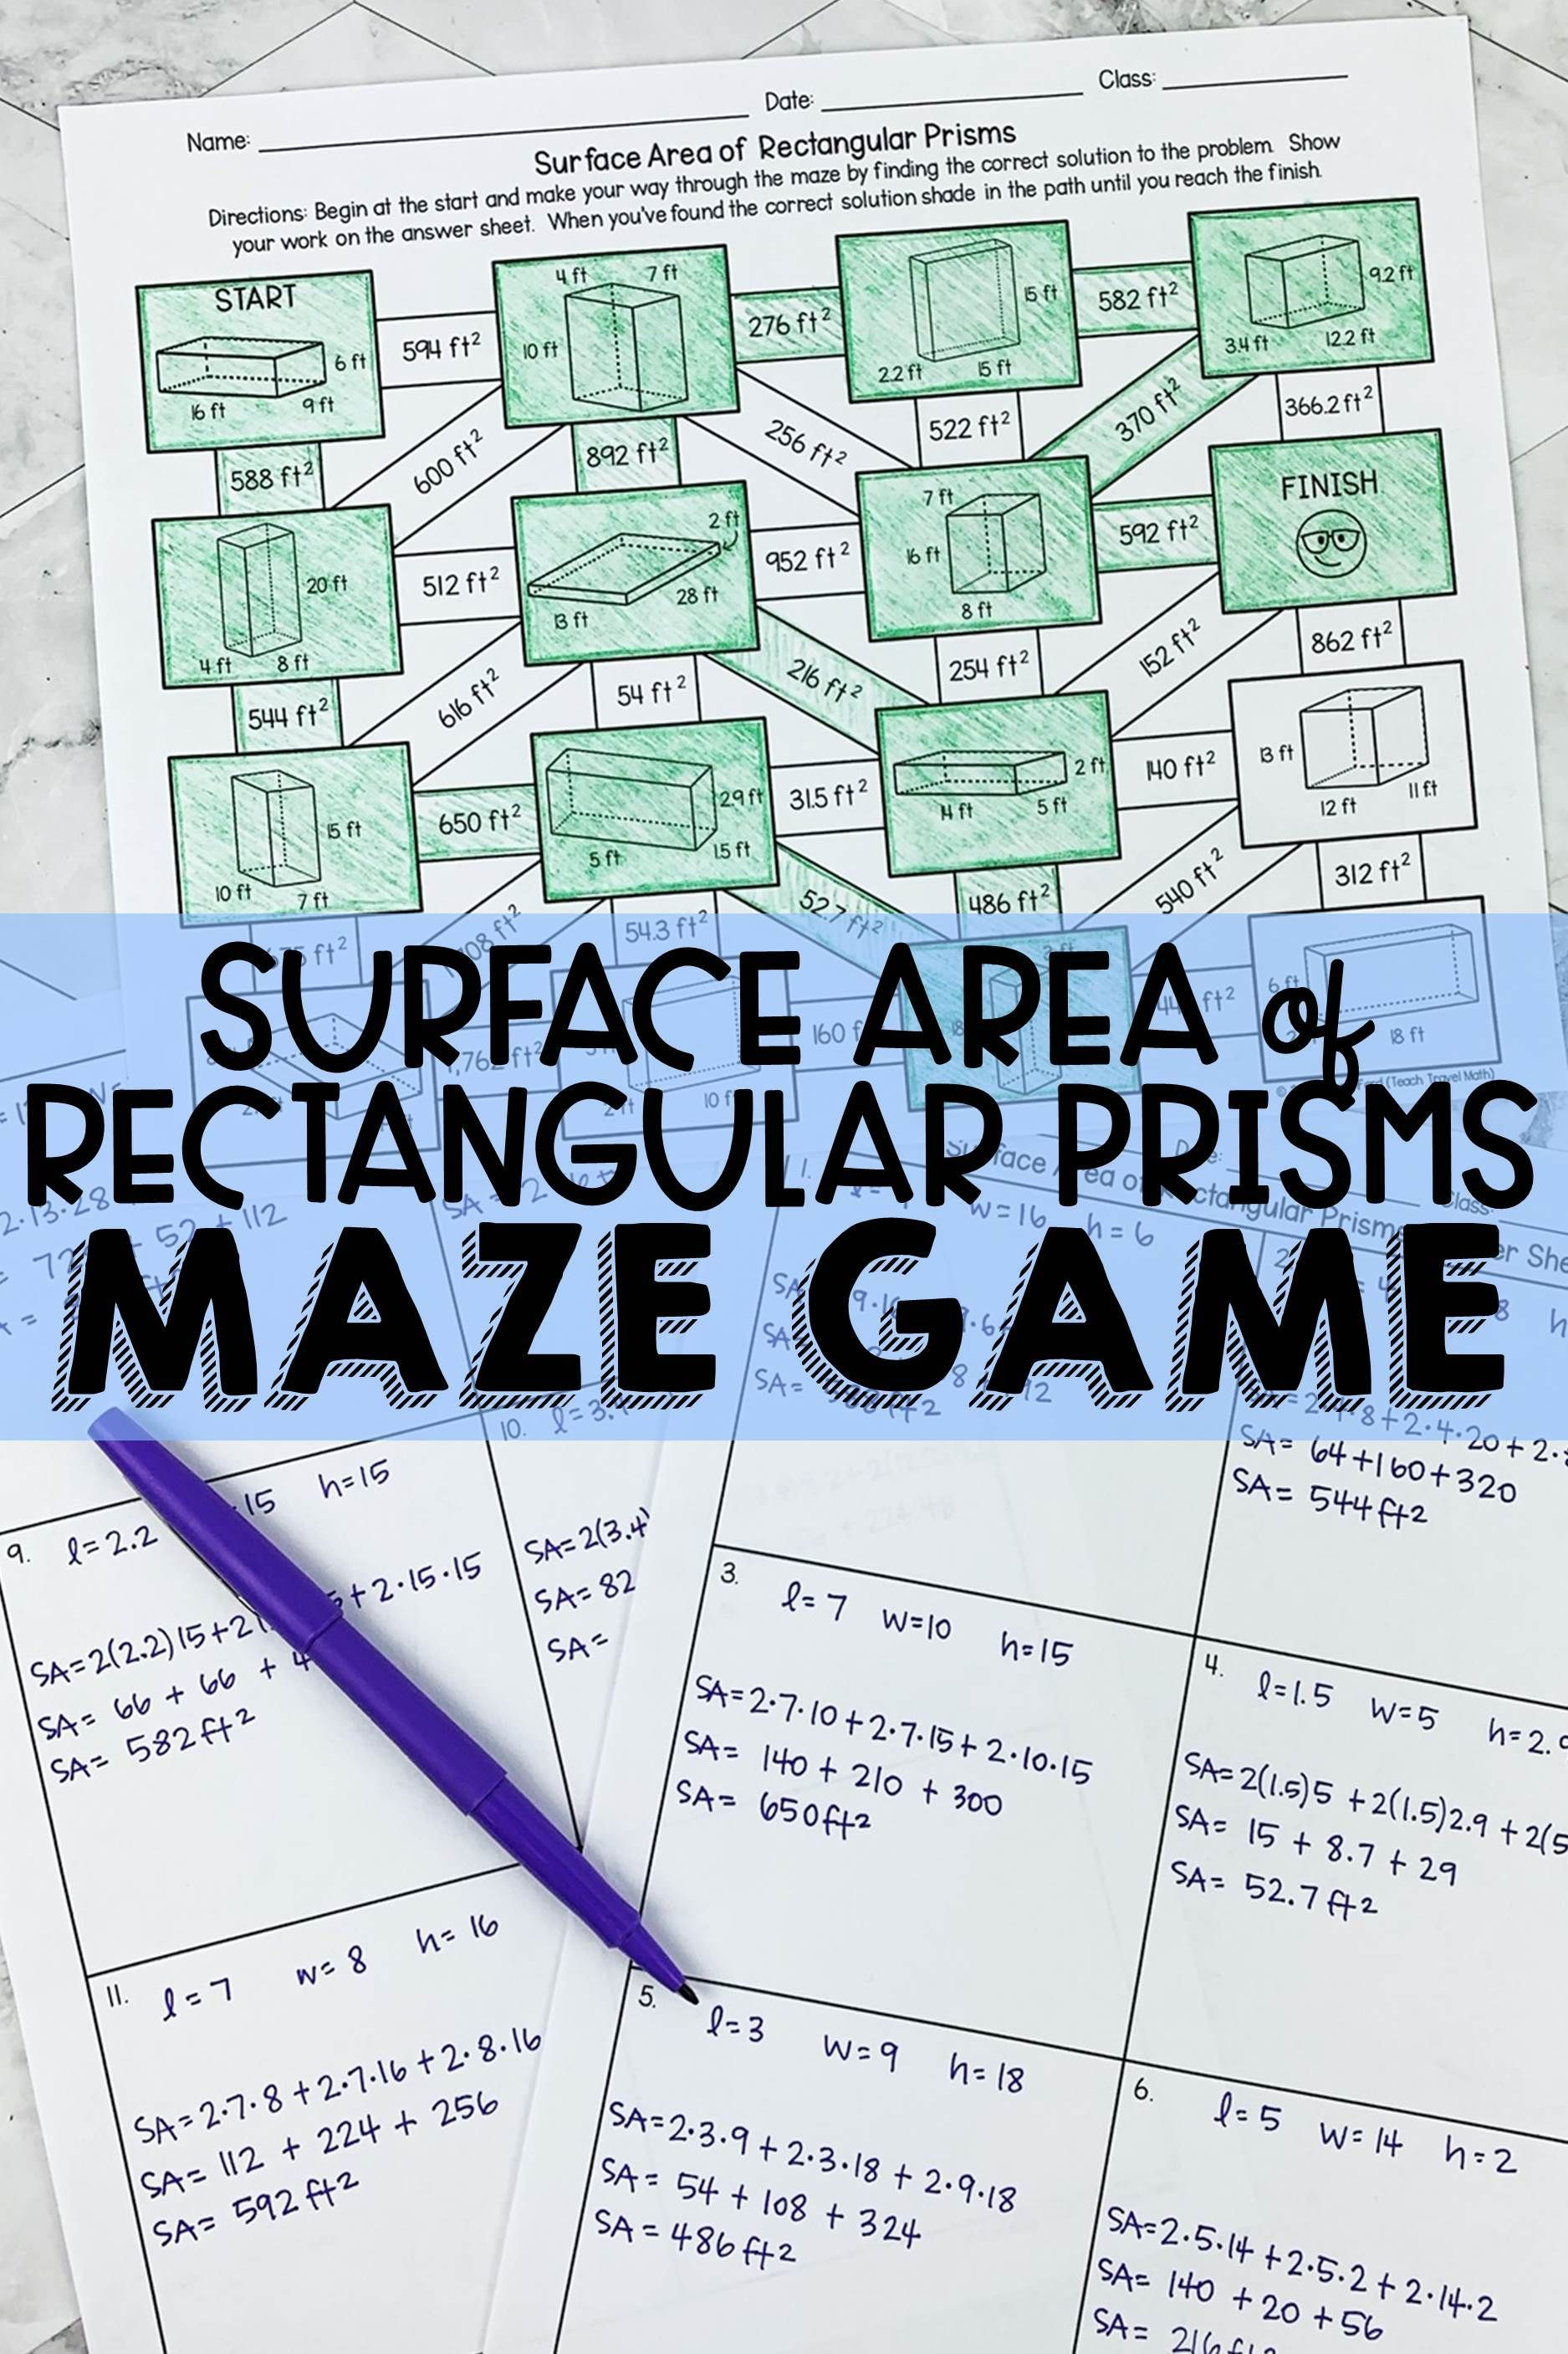 Surface Area Of Rectangular Prisms Maze